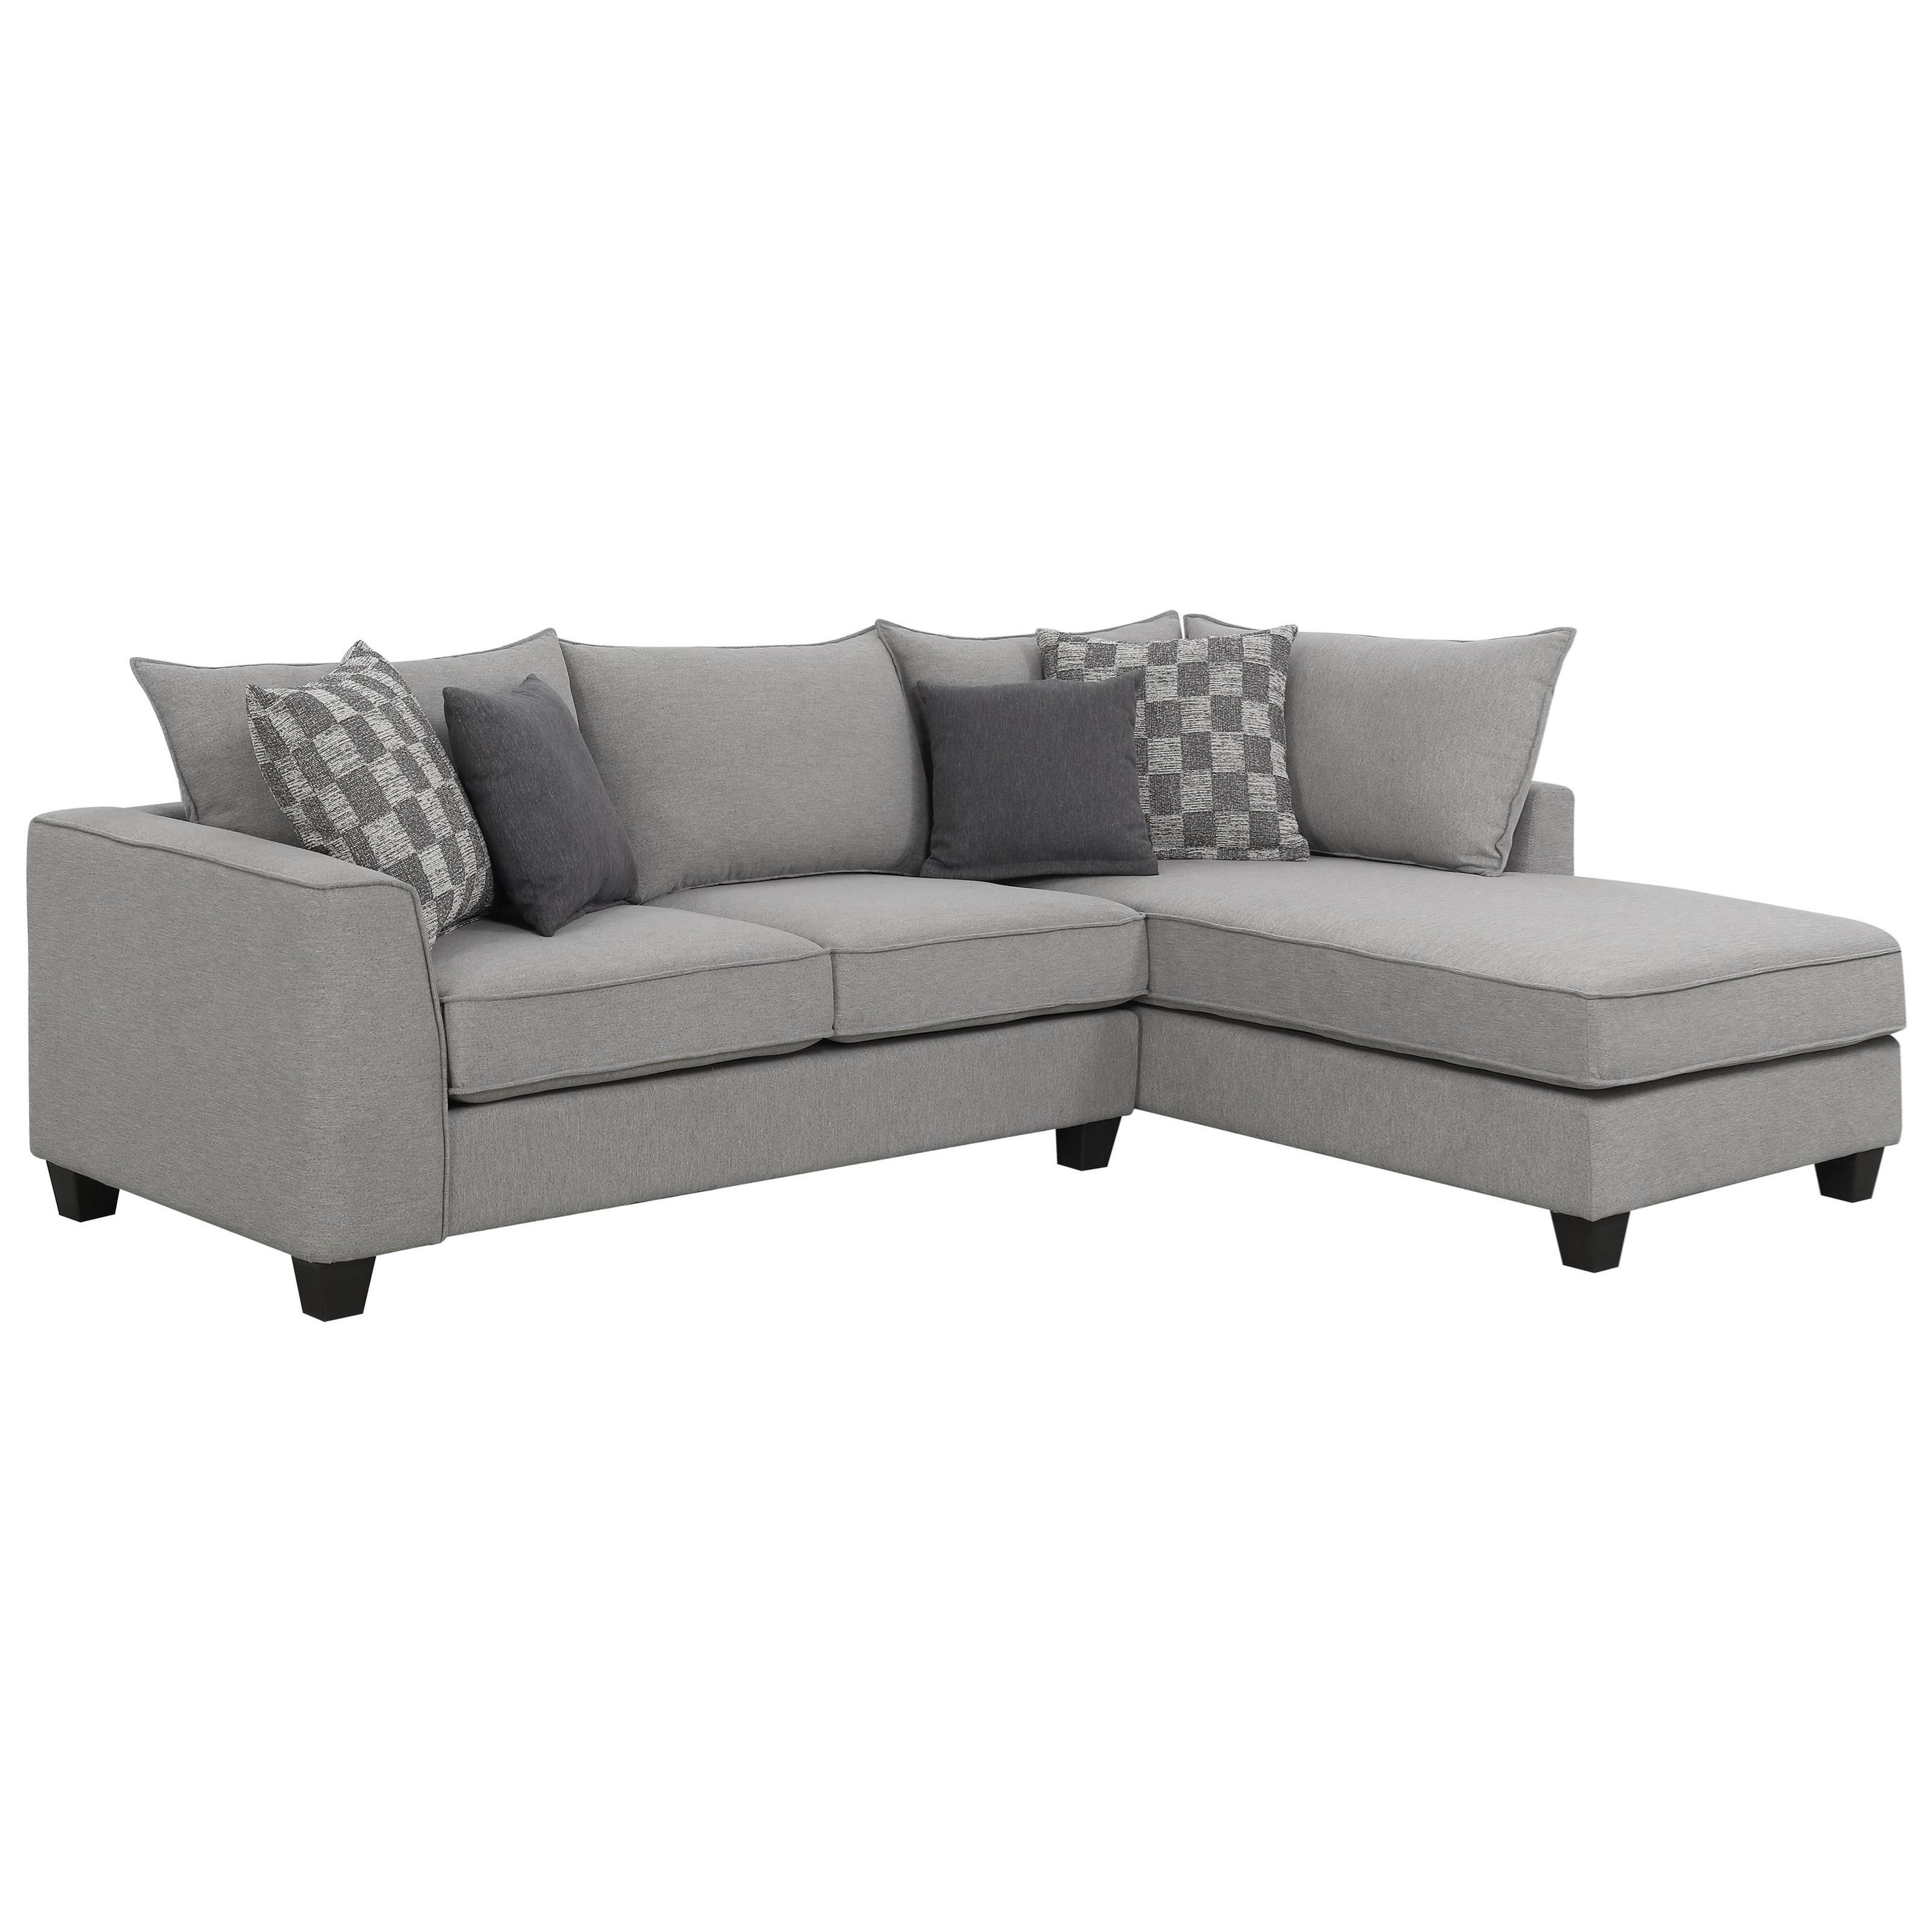 Alder Sectional Sofa with Chaise by Emerald at Suburban Furniture